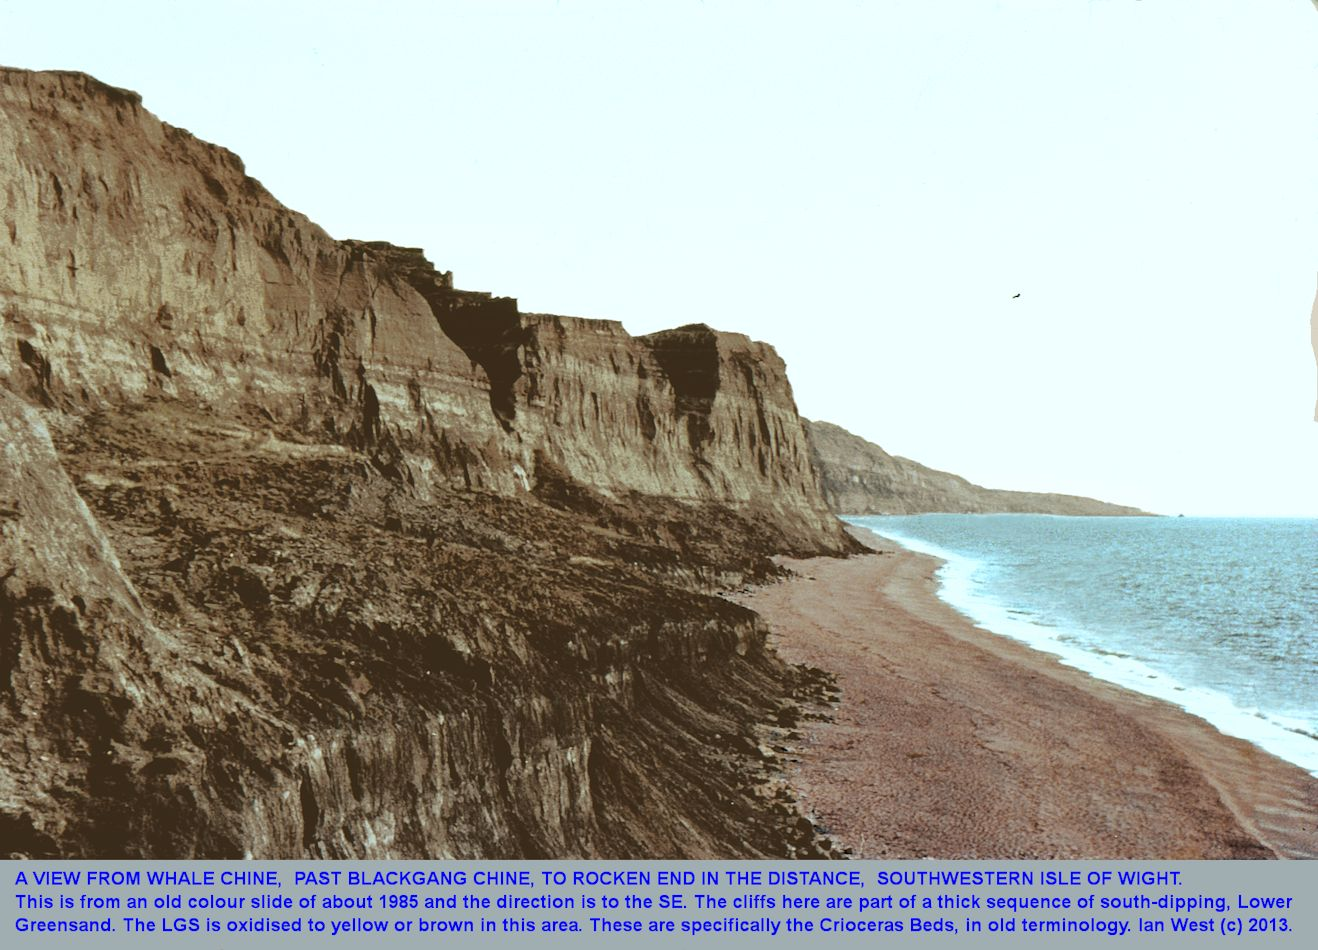 An old photograph from the foot of Whale Chine towards Rocken End, Southwestern Isle of Wight, with cliffs of the Crioceras Beds of the Lower Greensand